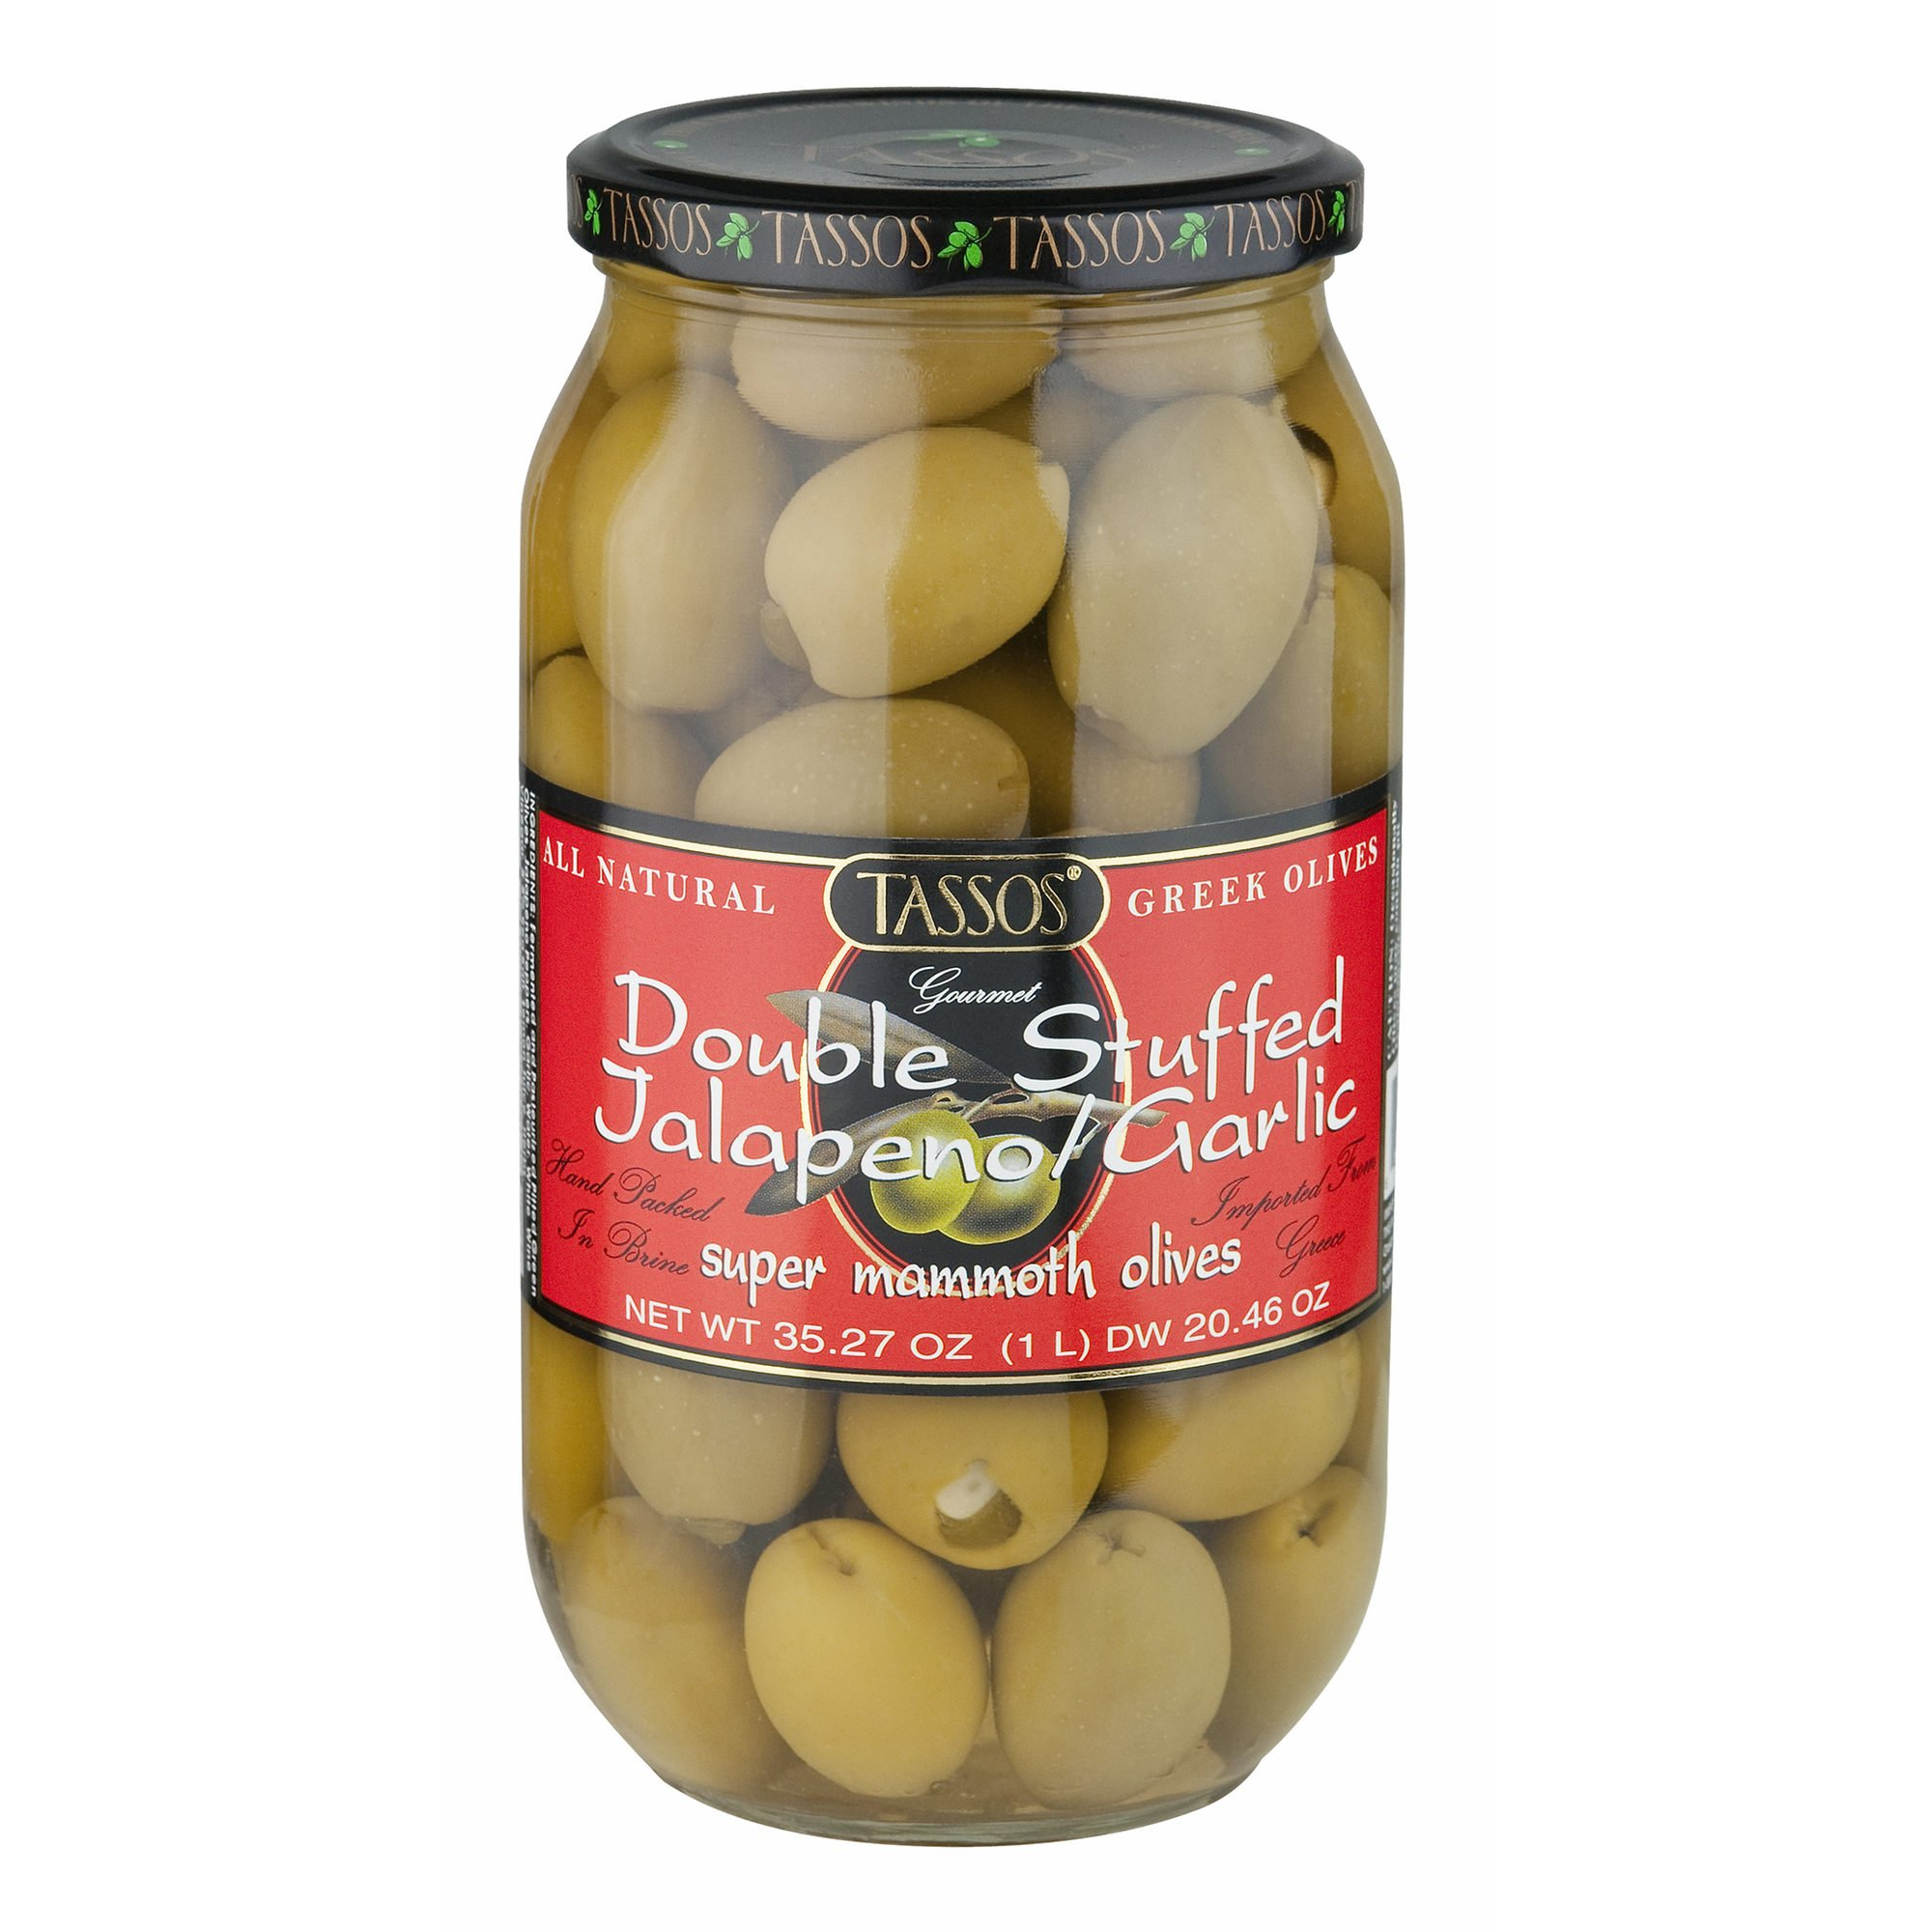 Tassos Double Stuffed Jalapeno and Garlic Olives, 1 Liter (pack of 2)